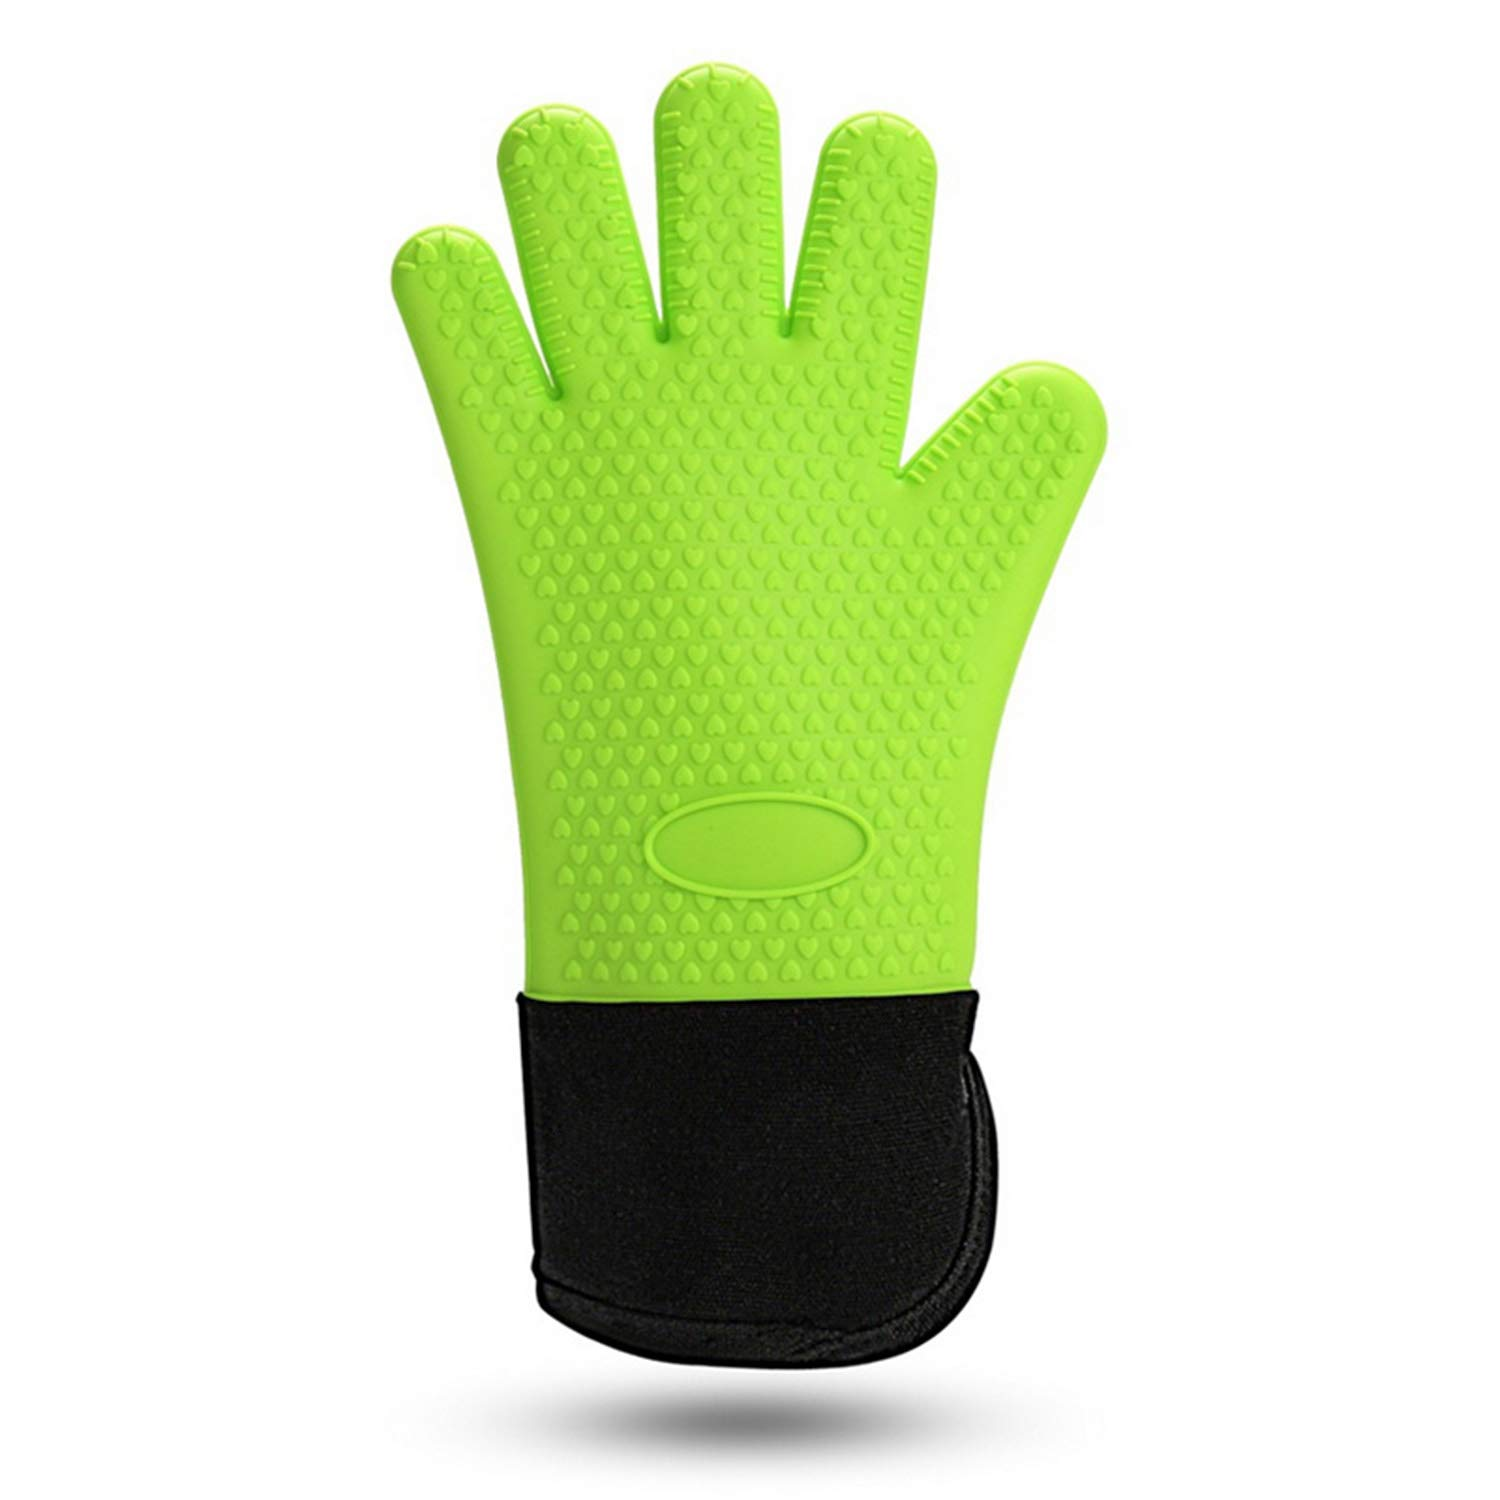 JOOIH 1PC Long Length Silicone Glove For Oven Heat Resistant Oven Gloves Cotton Mitt Silicone Baking Gloves For Microwave Kitchen Tool Green